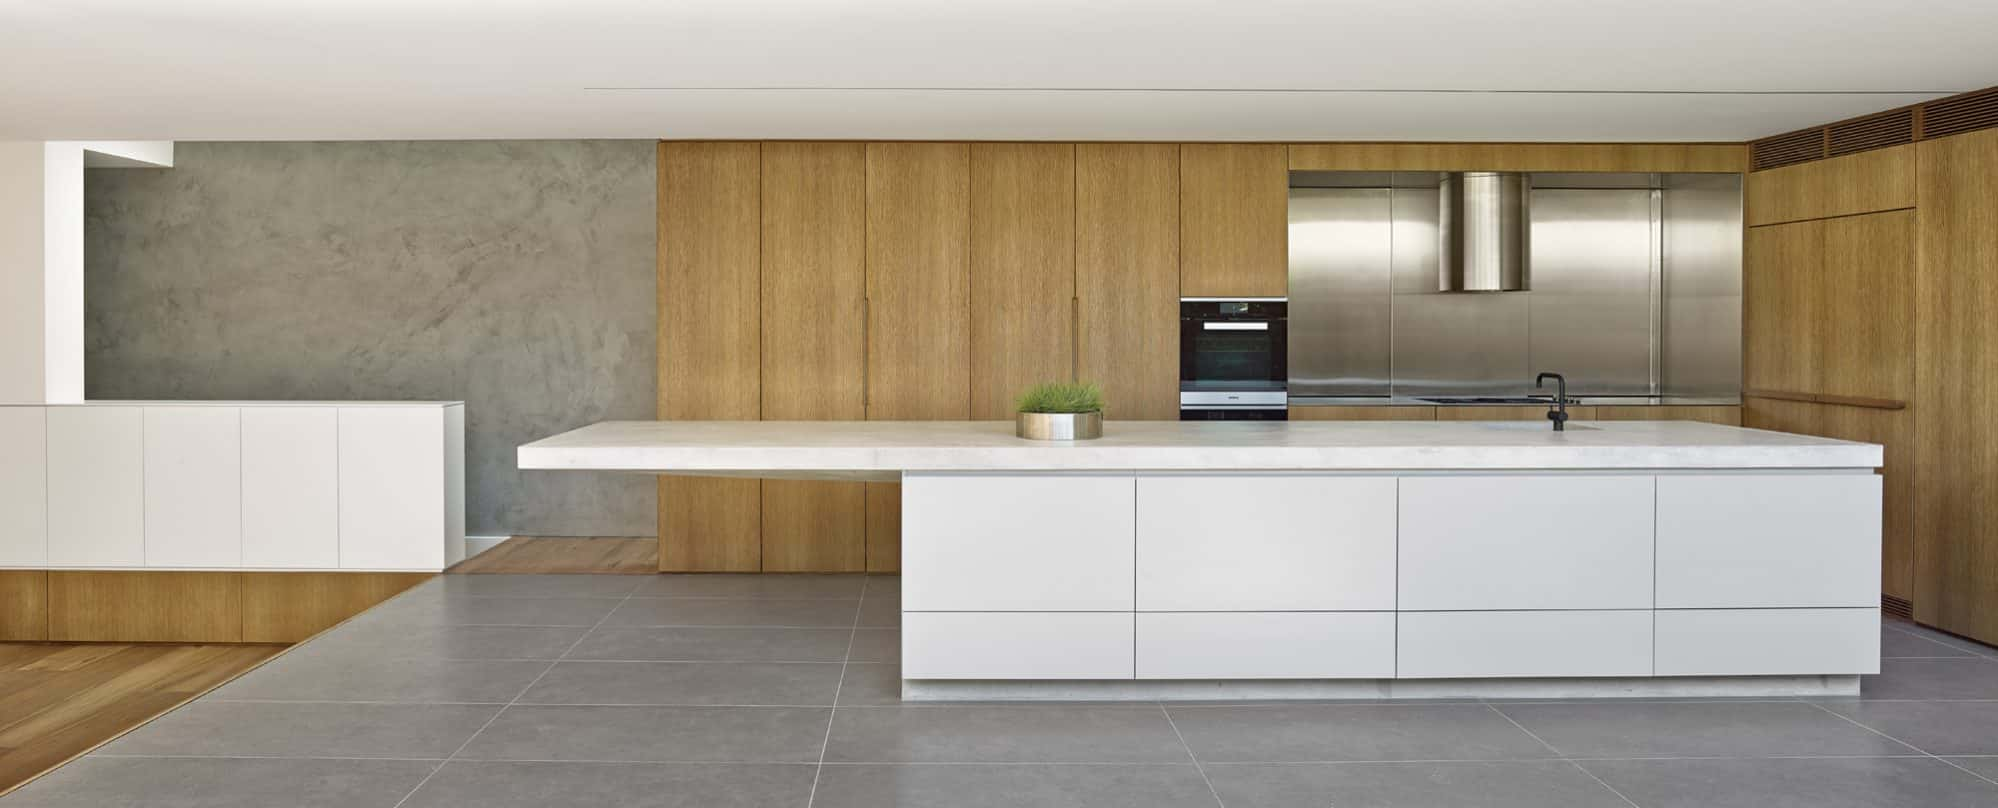 Birchgrove Kitchen showing the concrete cantilever island